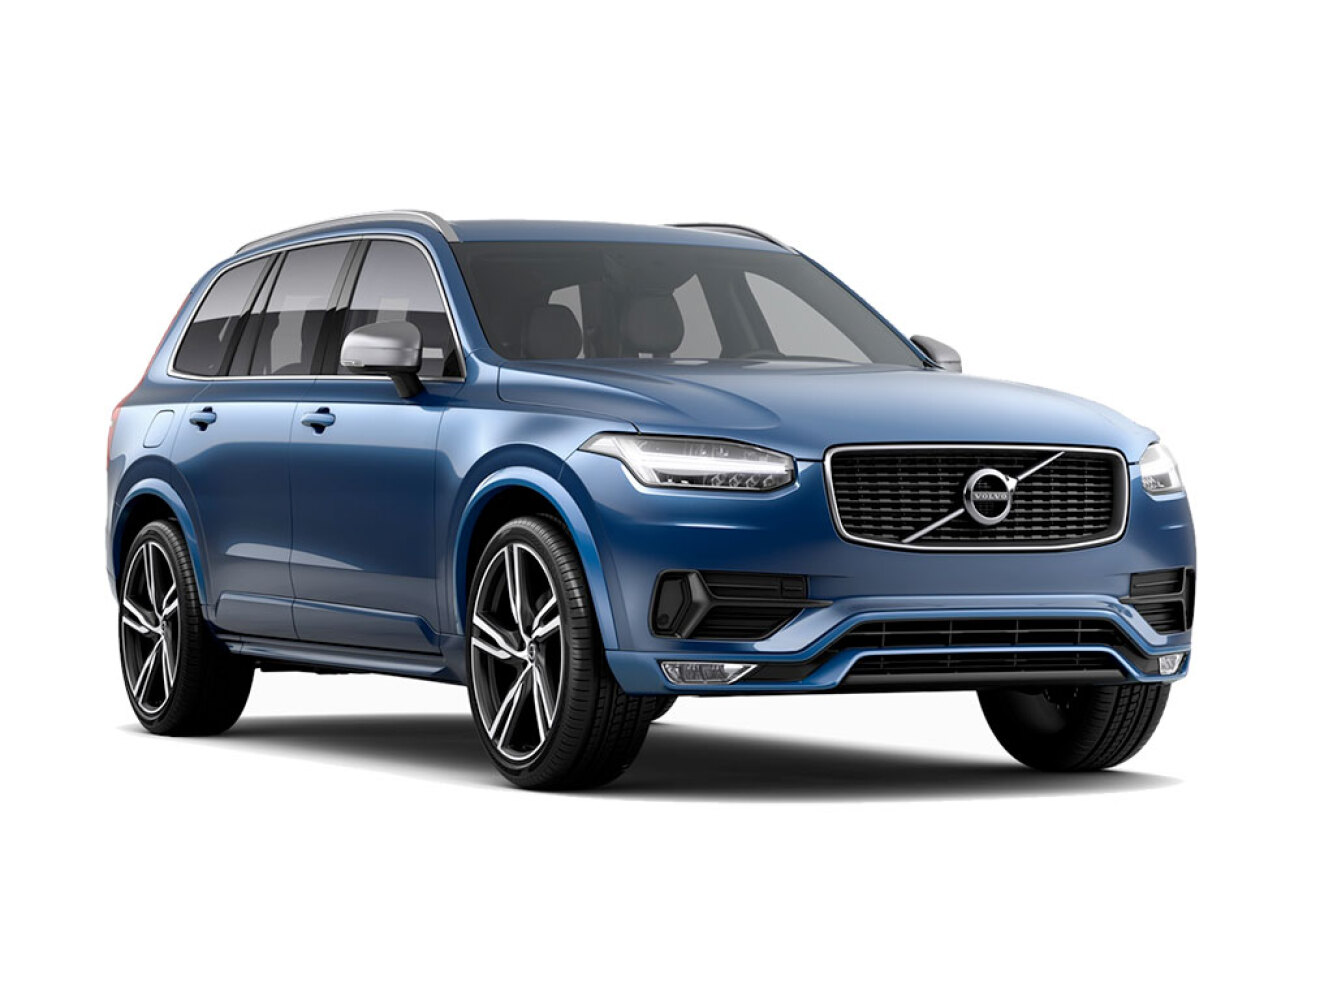 new volvo xc90 2 0 d5 powerpulse r design pro 5dr awd geartronic diesel estate for sale. Black Bedroom Furniture Sets. Home Design Ideas